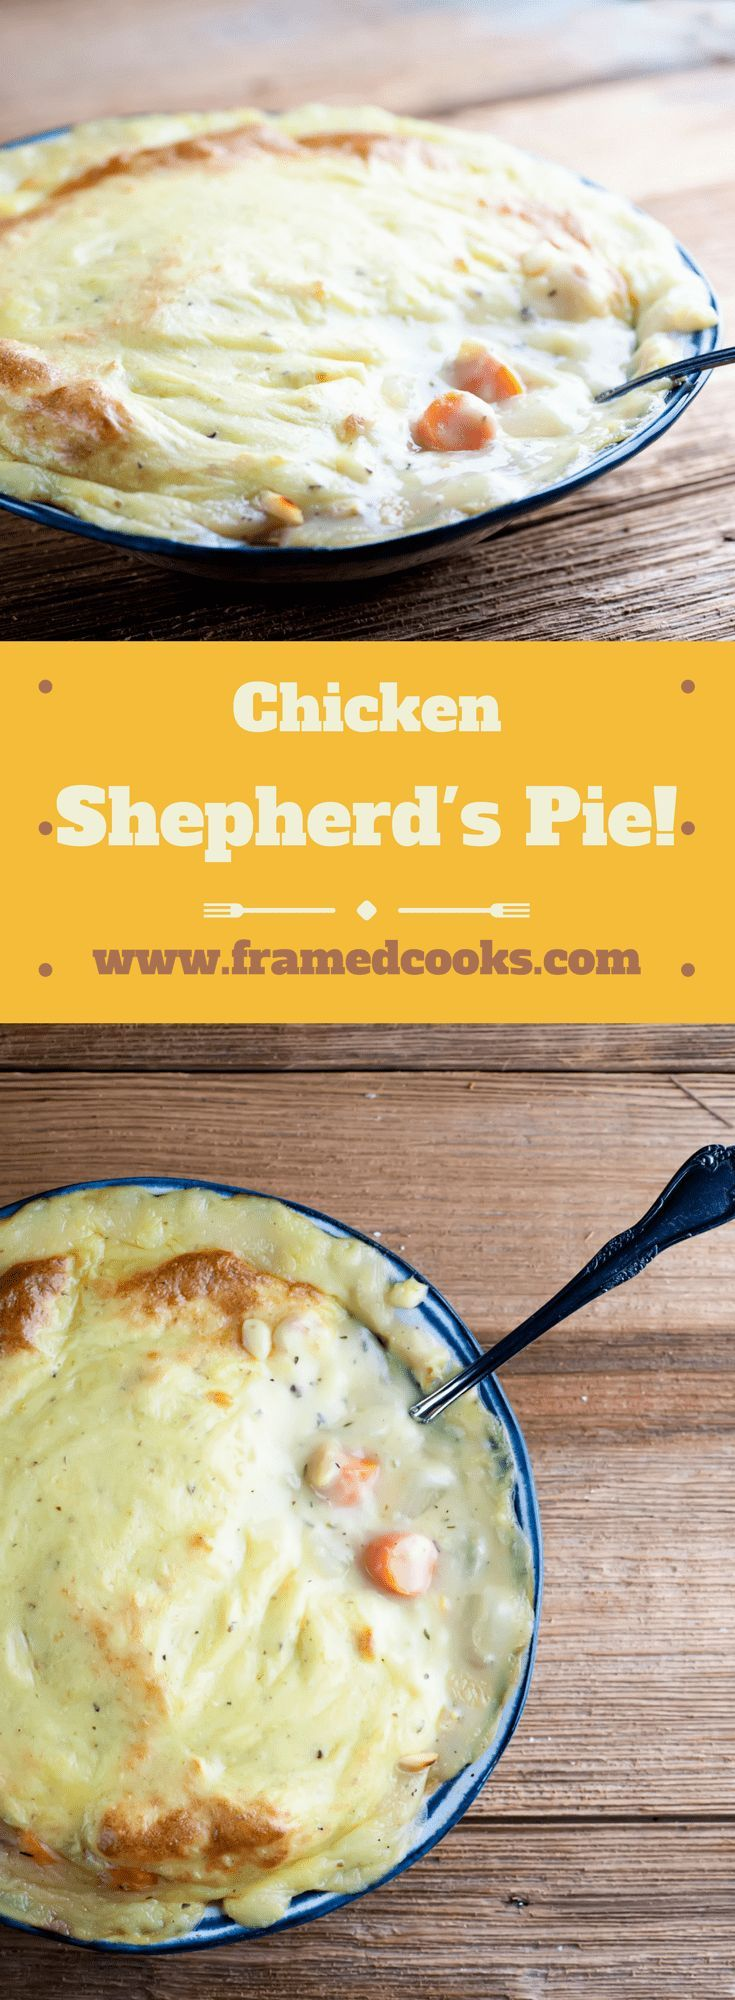 Chicken Shepherd's Pie #shepardspie